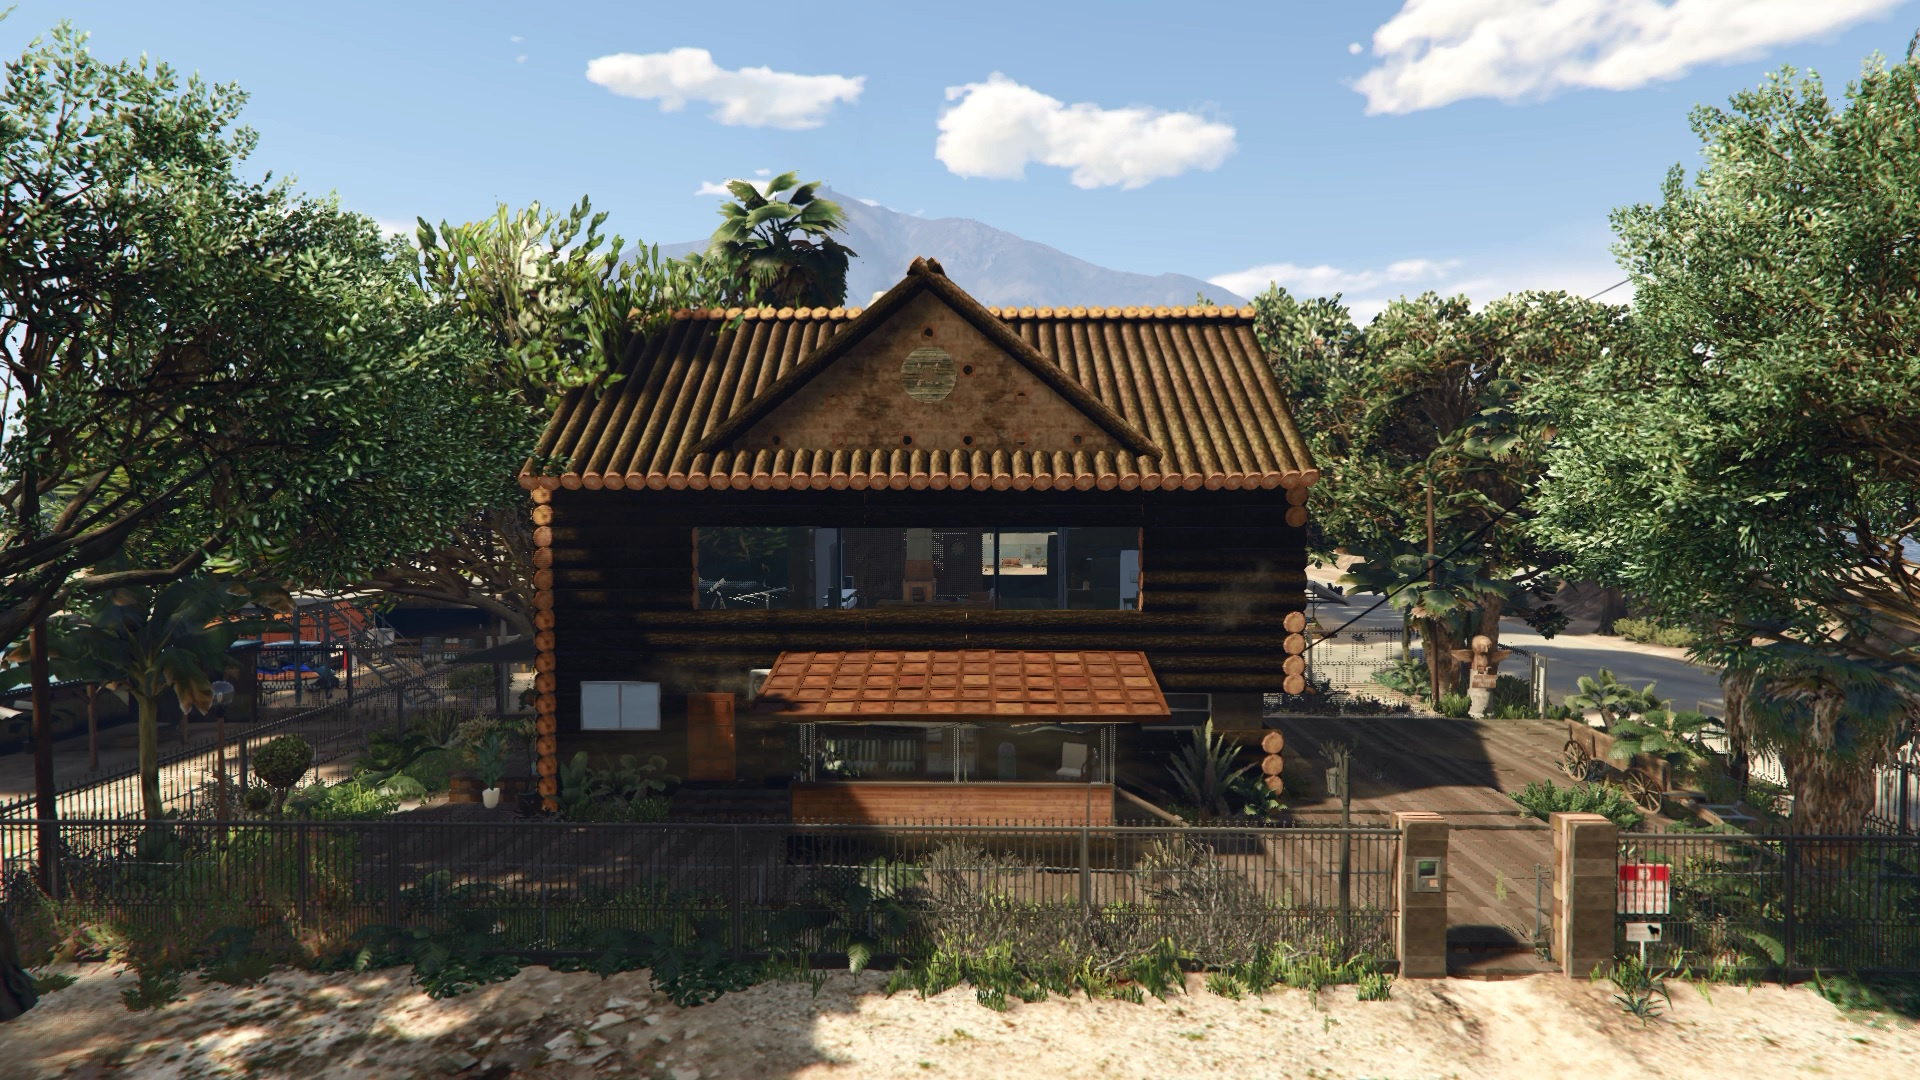 Latest GTA 5 Mods - House - GTA5-Mods com